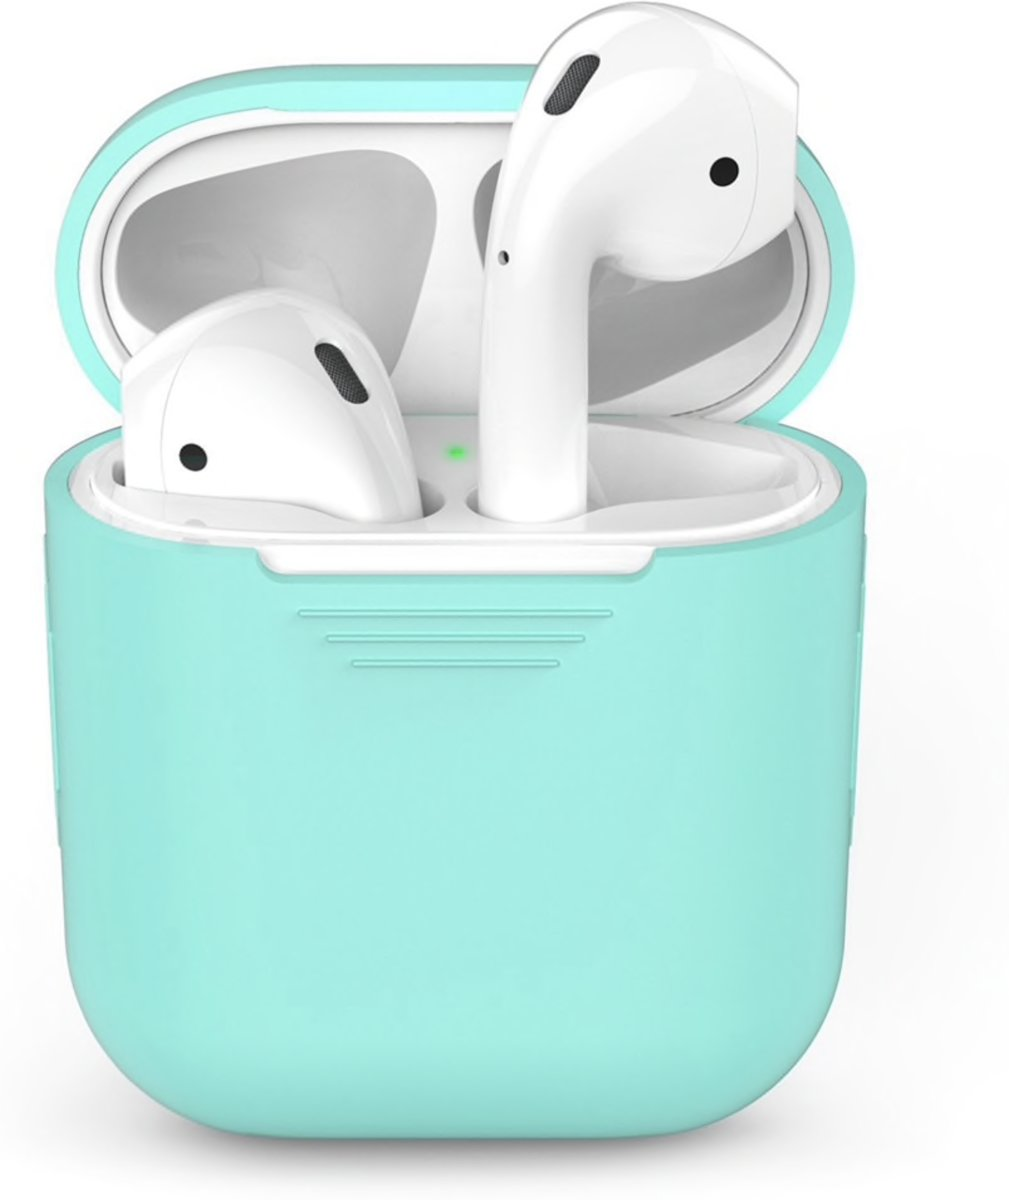 Airpods Silicone Case Cover Hoesje voor Apple Airpods - Cyaan Turquoise kopen